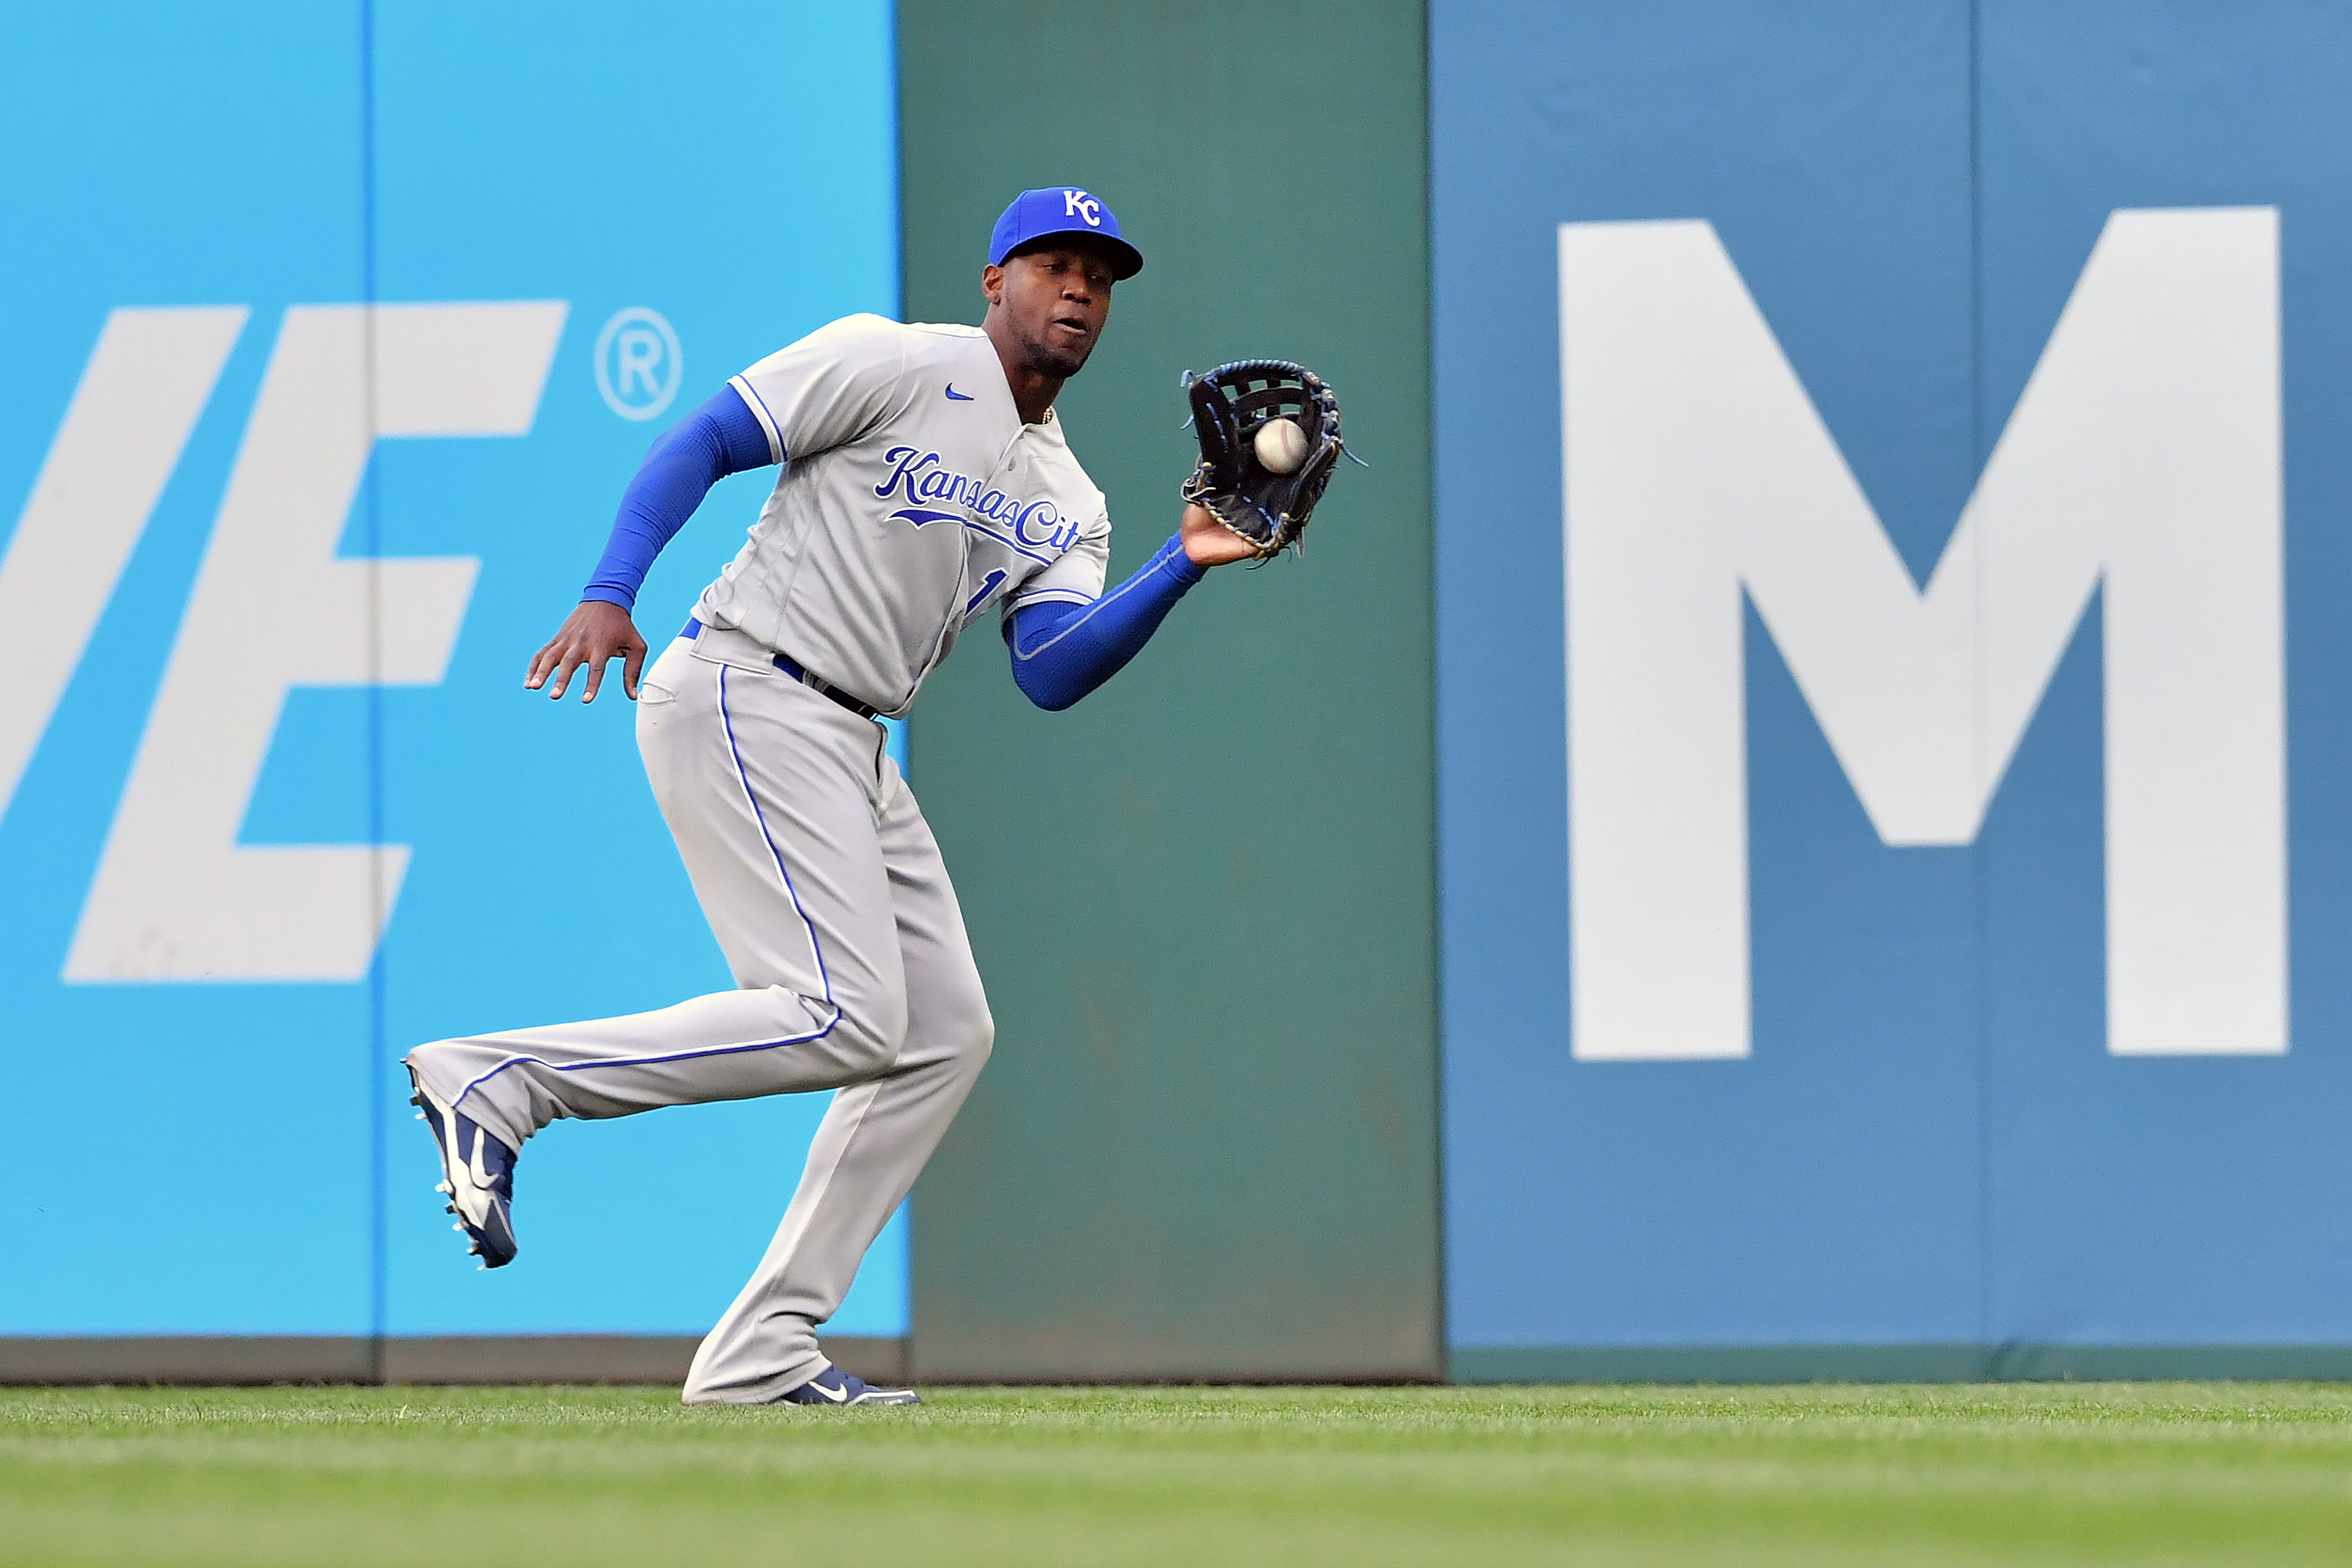 Right fielder Jorge Soler #12 of the Kansas City Royals catches a fly ball hit by Amed Rosario #1 of the Cleveland Indians during the seventh inning of the home opener at Progressive Field on April 05, 2021 in Cleveland, Ohio.